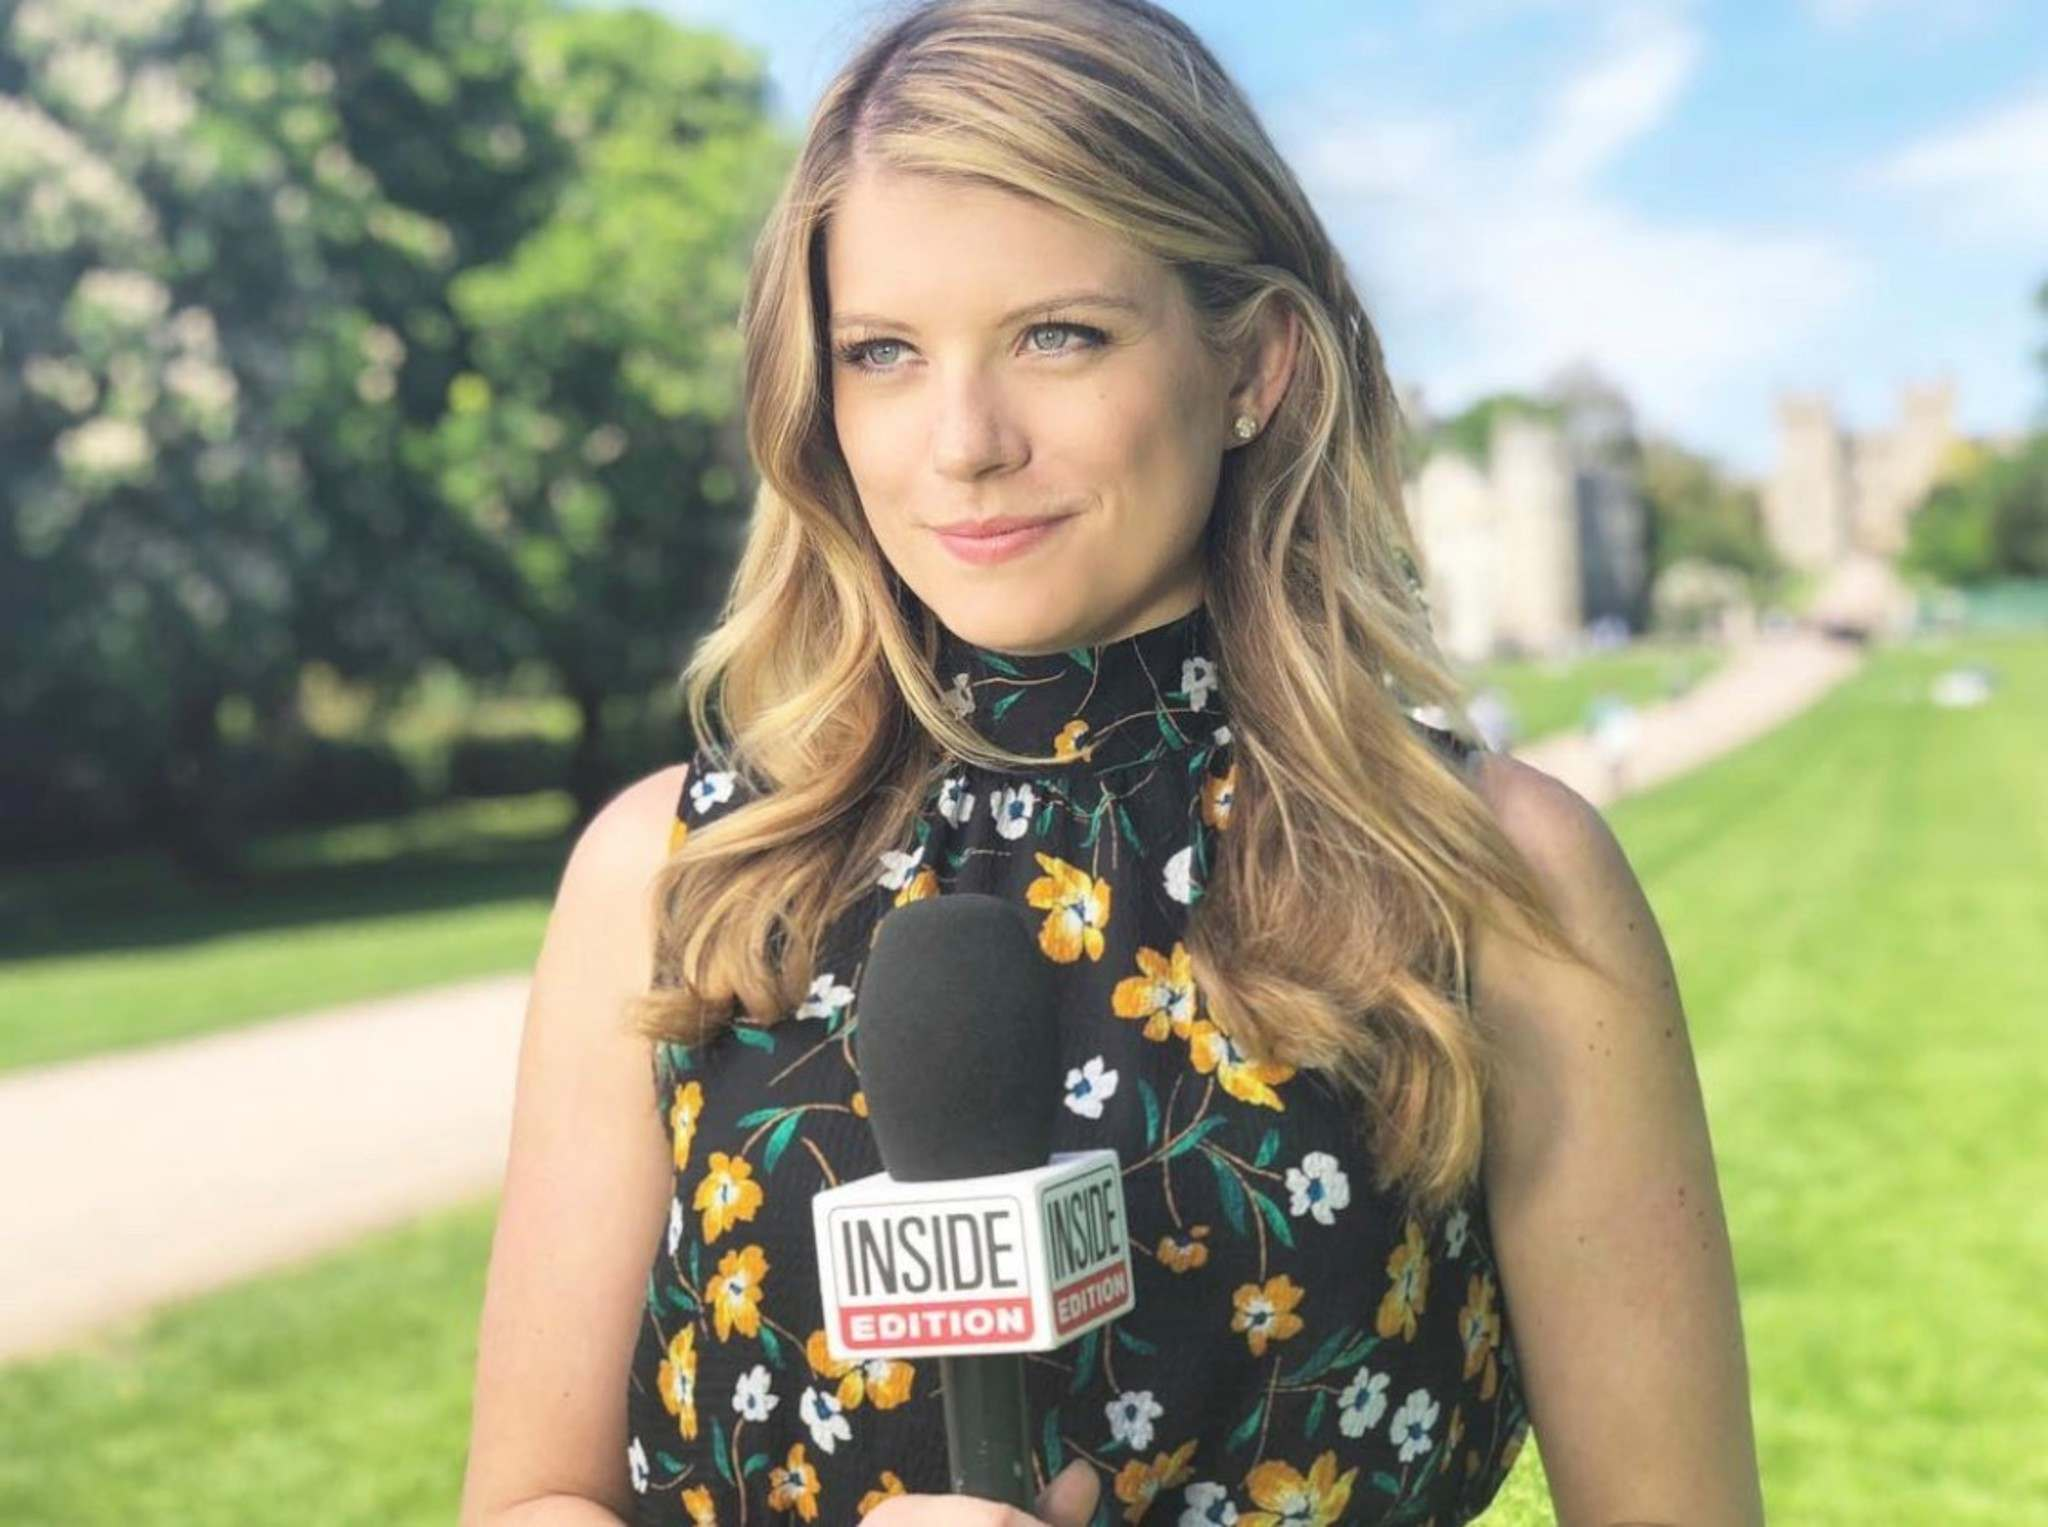 Alison Hall is a New York-based producer/contributor of the TV news magazine Inside Edition and also anchors a weekly show on the Law & Crime Network.